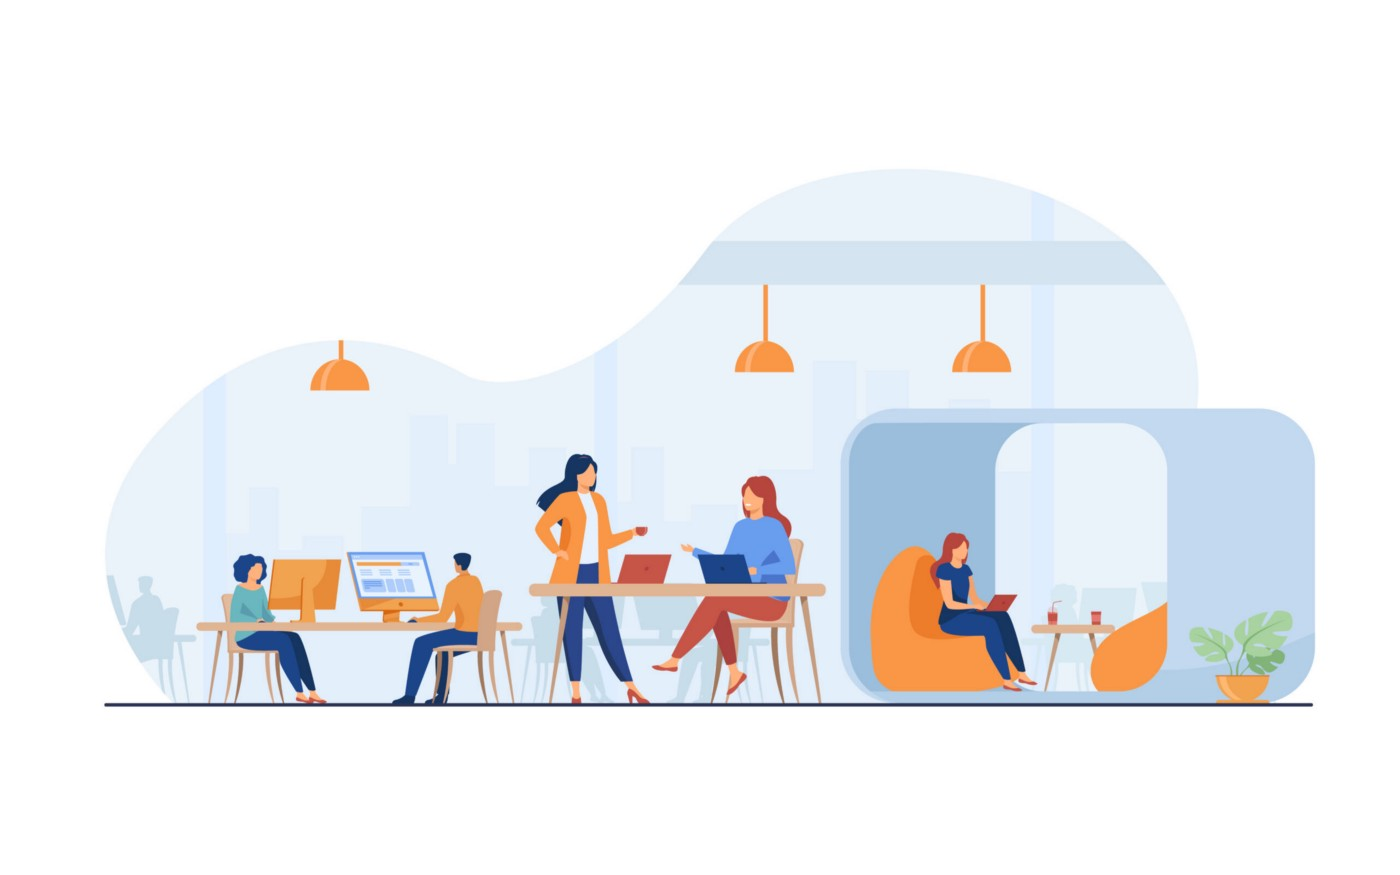 The Impact of AI on Workspaces